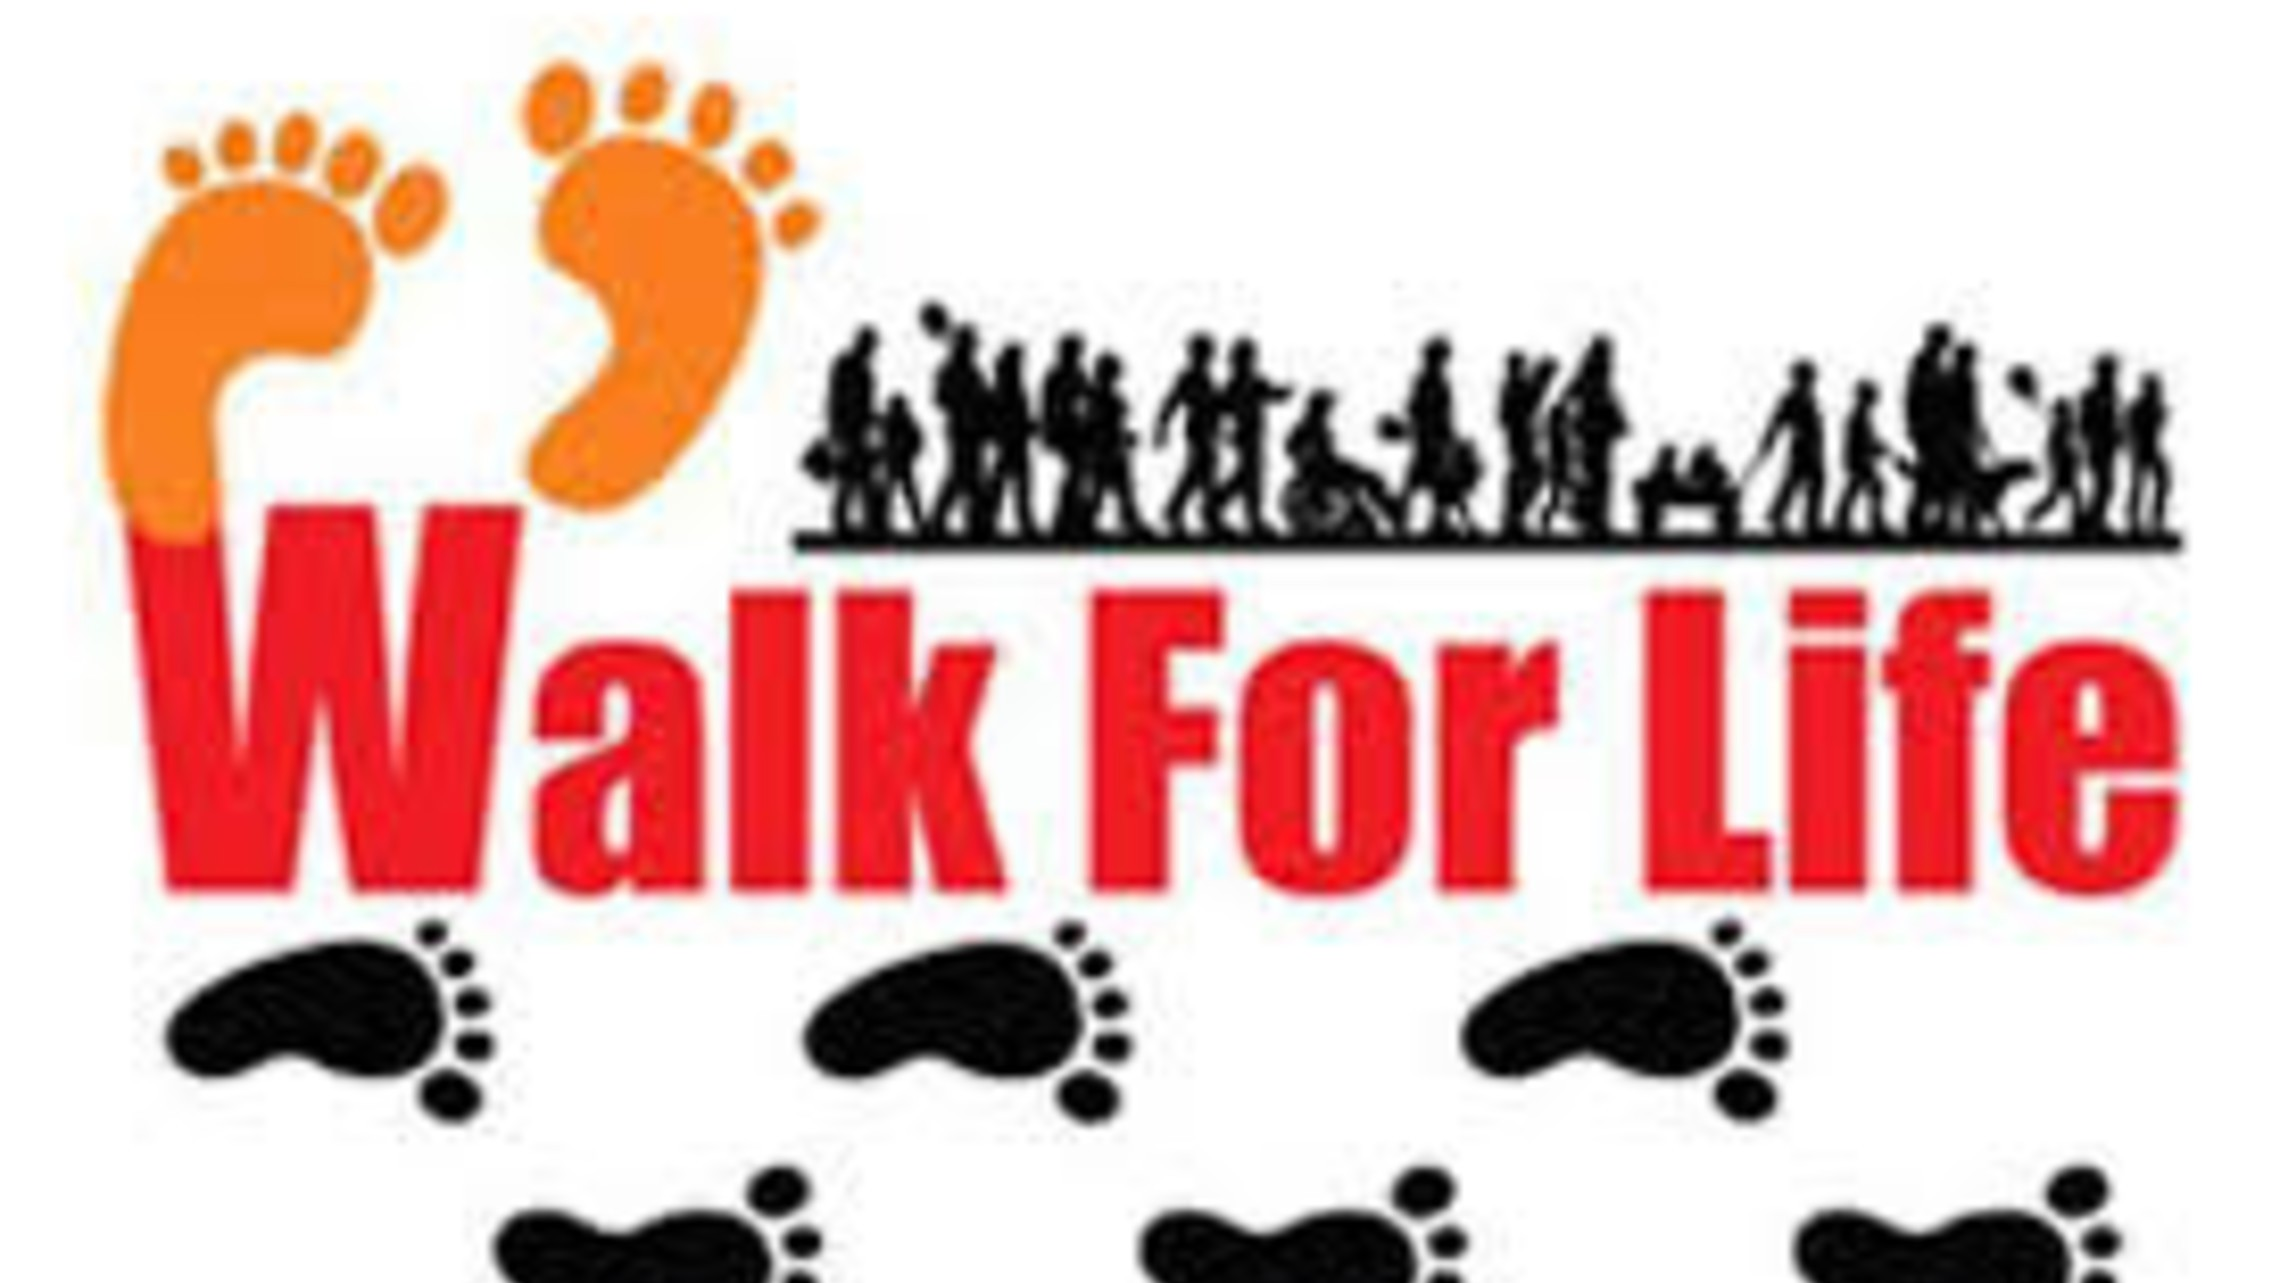 Walk For Life Image